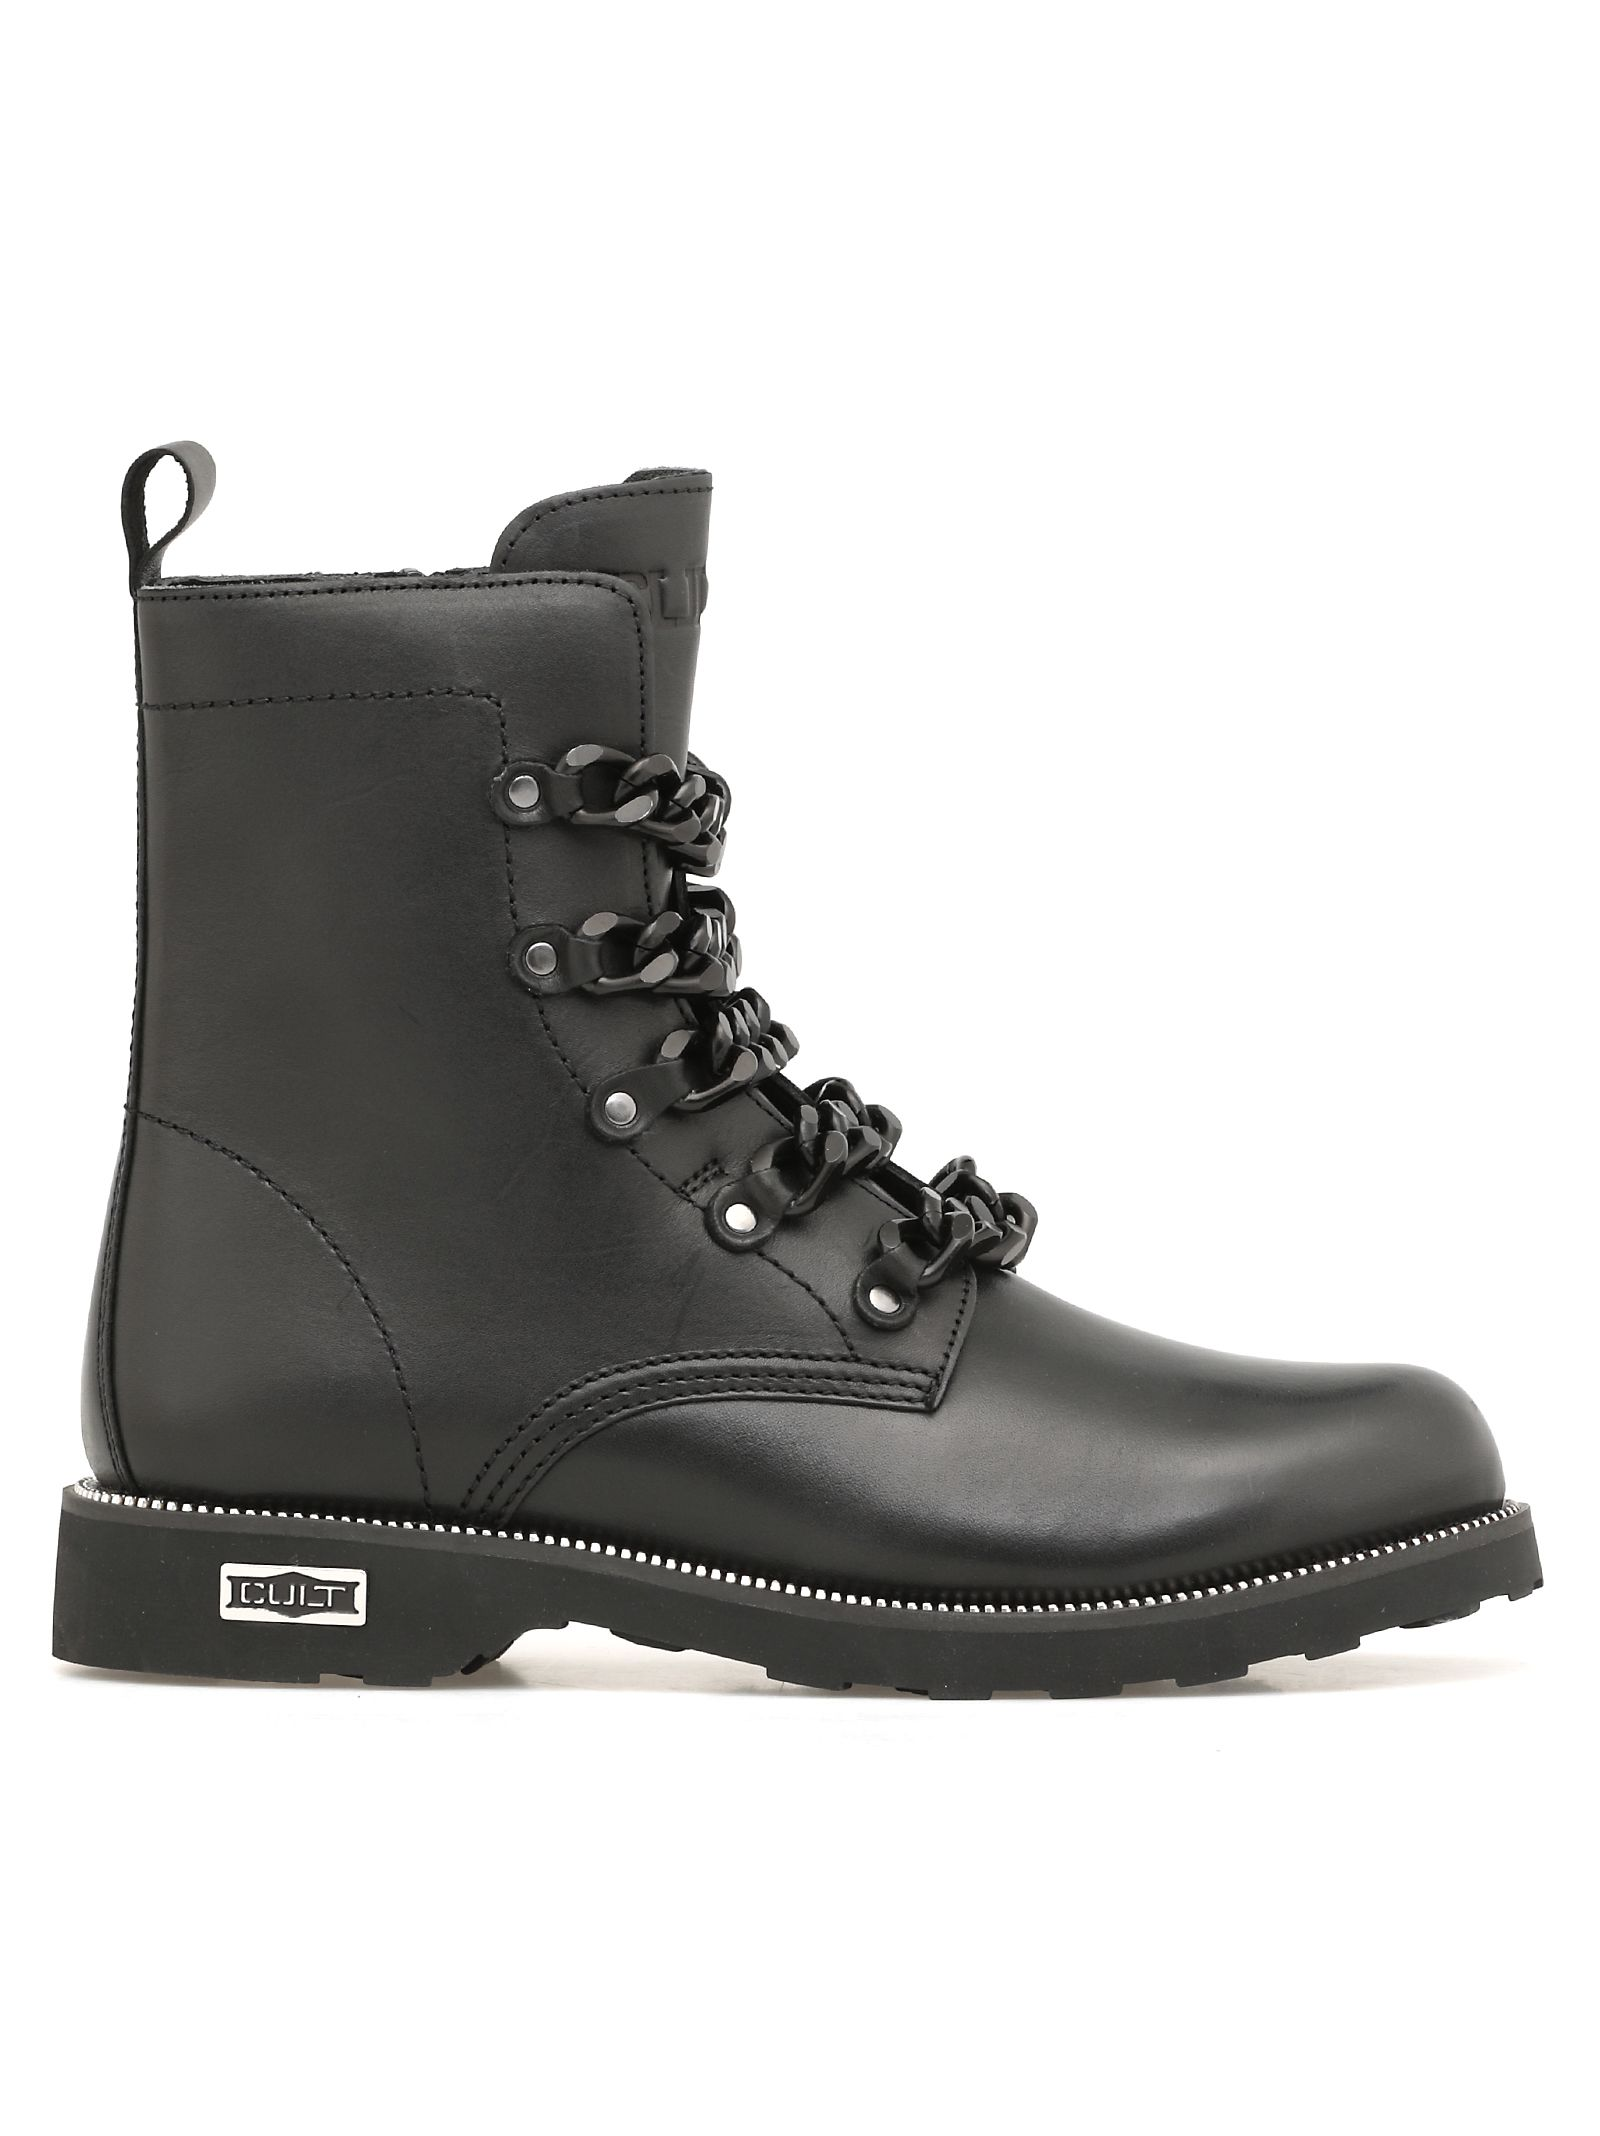 CULT Zeppelin Mid Army Boots in Black